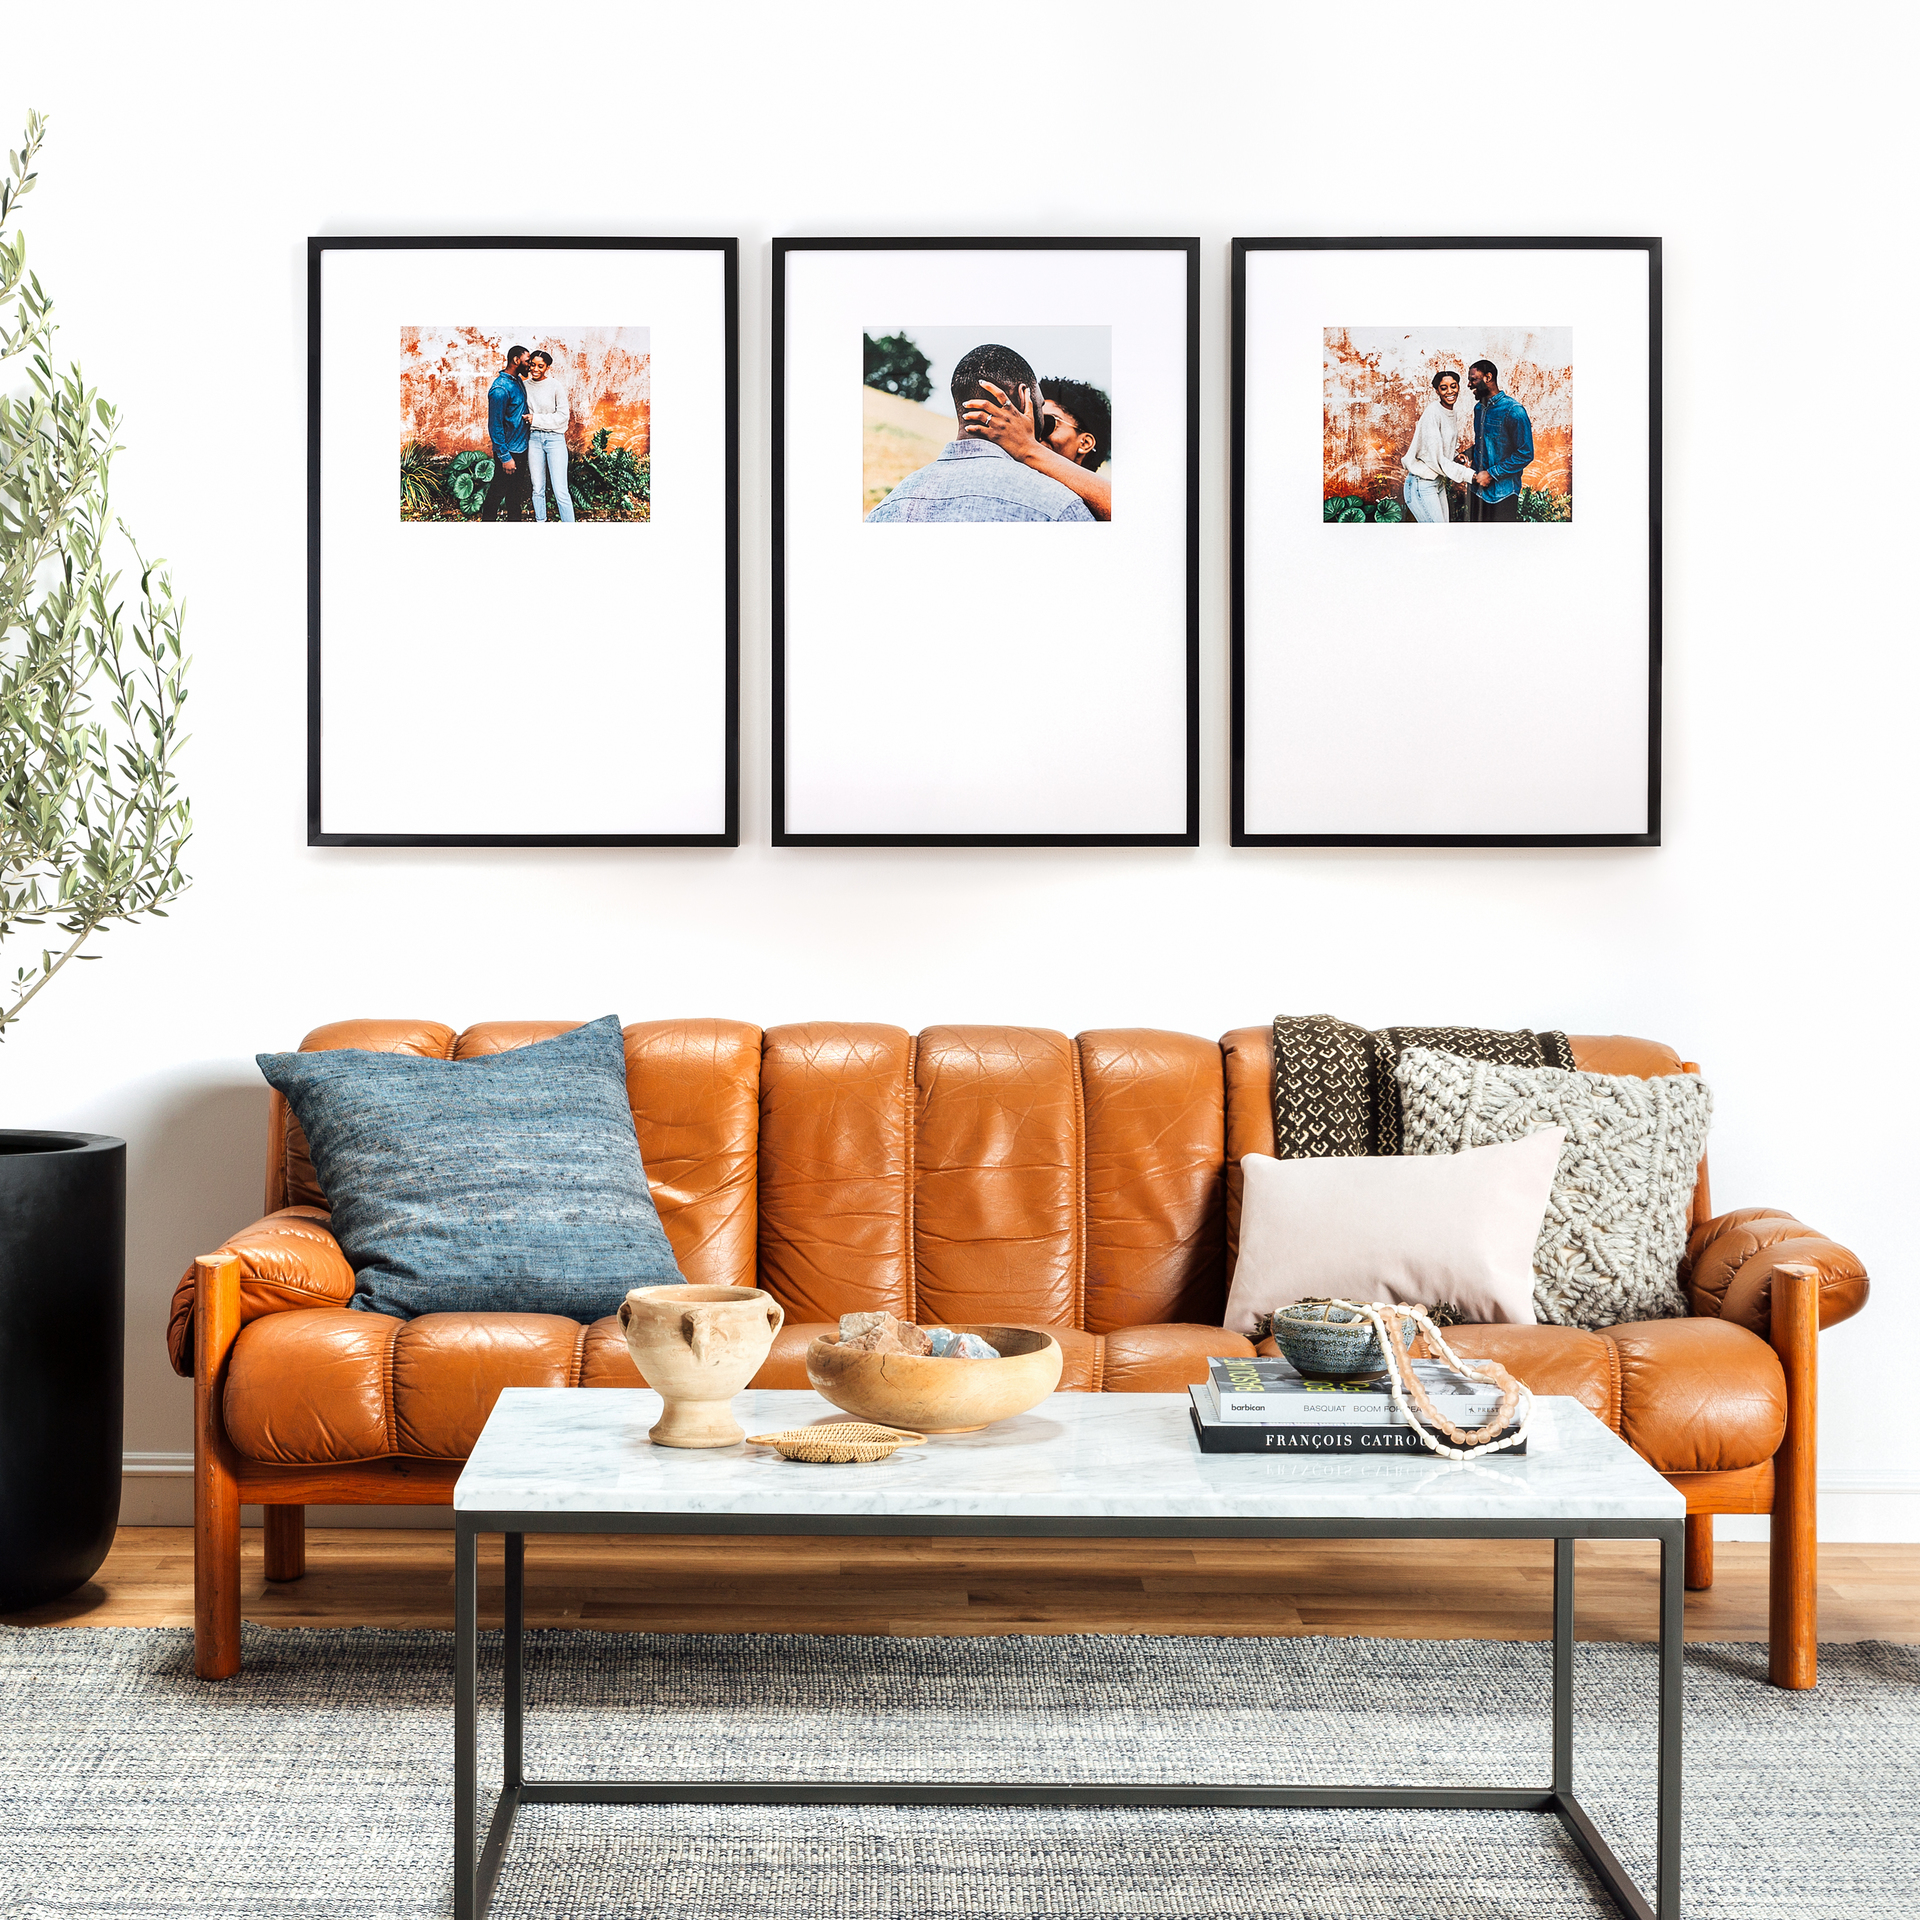 Shop The Triptych | Our Most Popular Gallery Wall from Framebridge on Openhaus